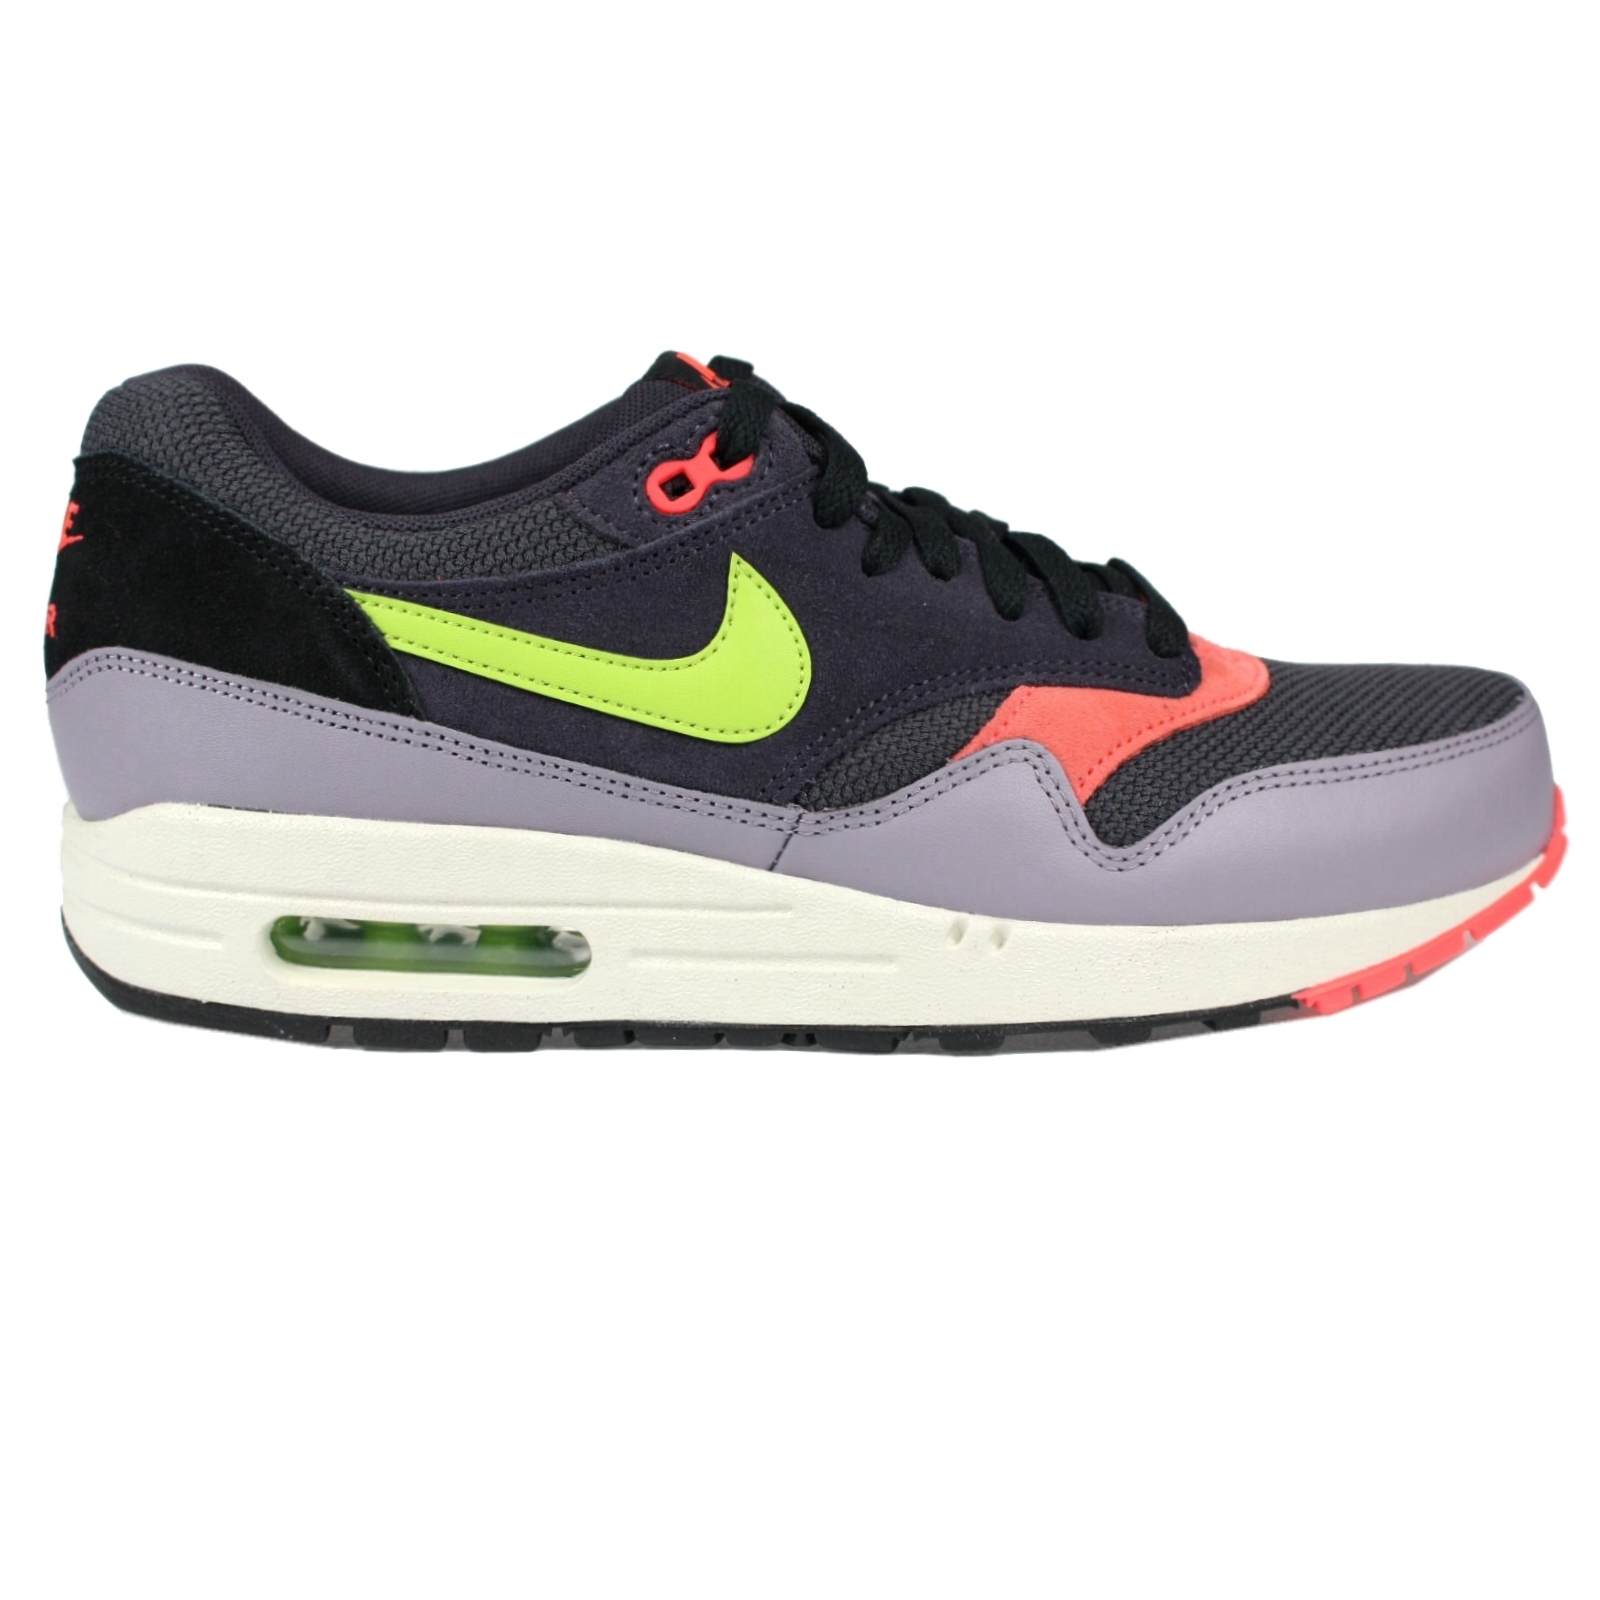 nike air max 1 essential 537383 schuhe turnschuhe sneaker. Black Bedroom Furniture Sets. Home Design Ideas